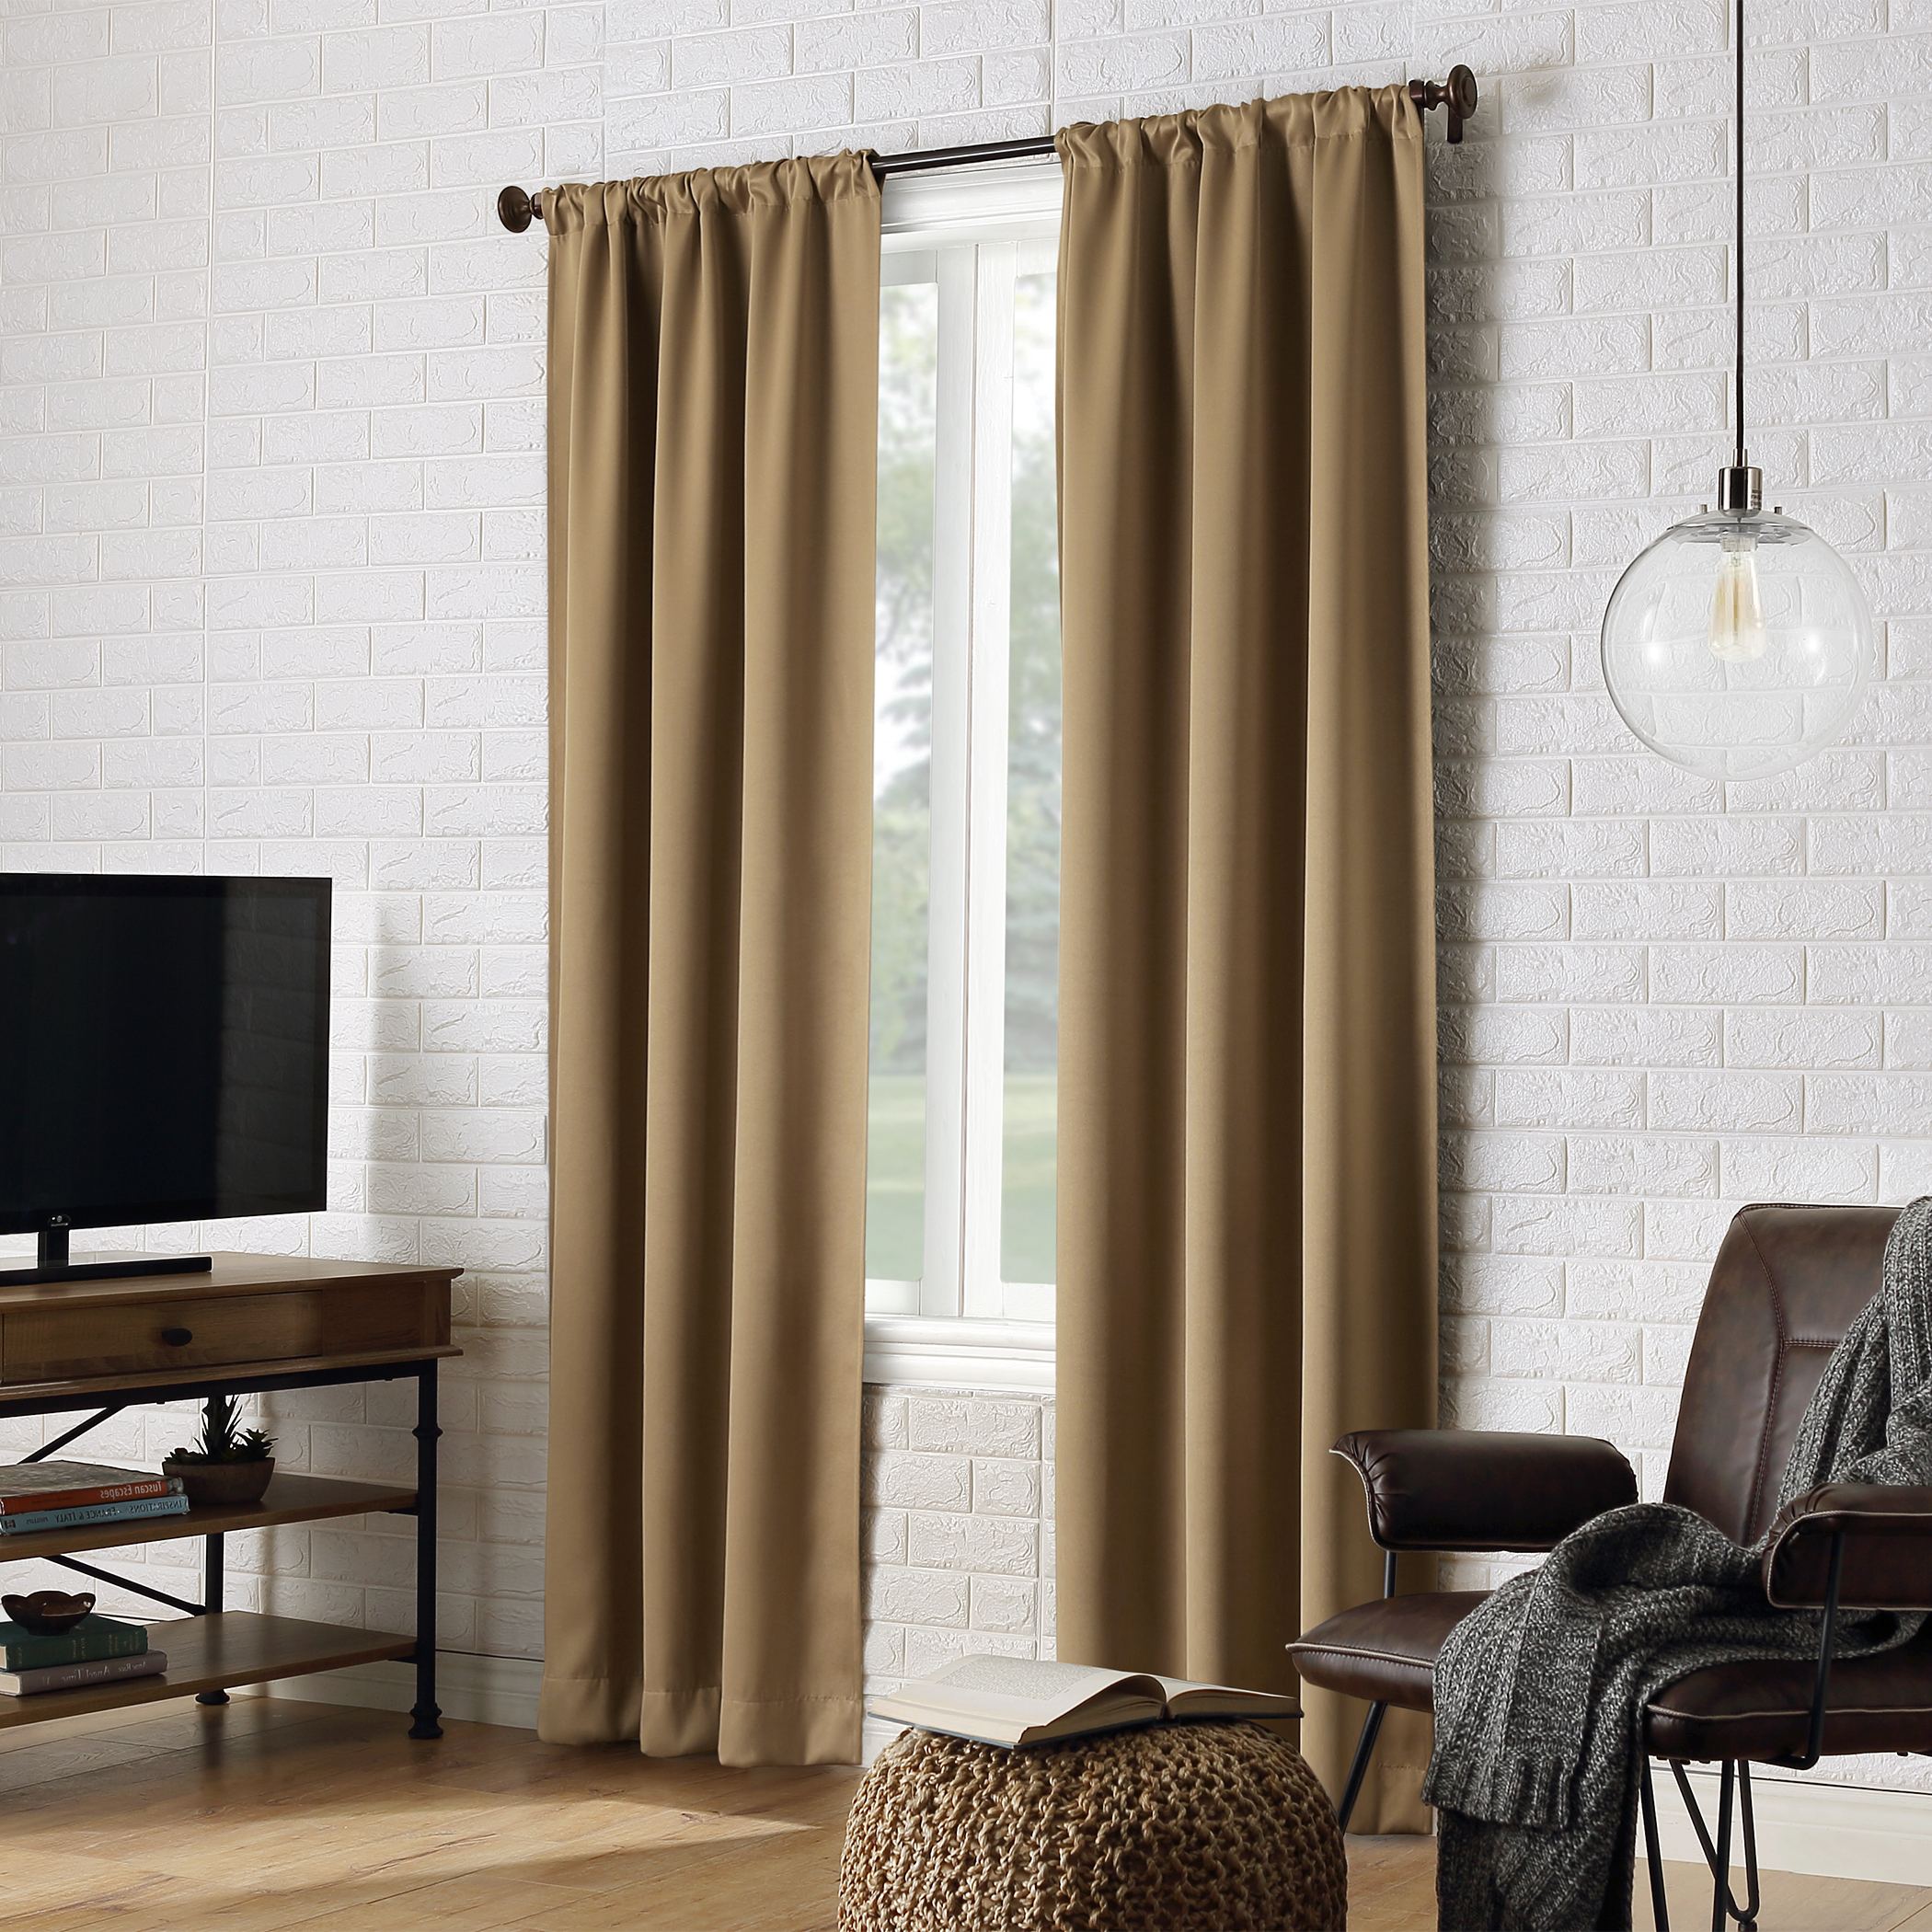 [%sun Zero Avery 100% Blackout Rod Pocket Curtain Panel With Regard To Current Tuscan Thermal Backed Blackout Curtain Panel Pairs|tuscan Thermal Backed Blackout Curtain Panel Pairs Intended For Well Known Sun Zero Avery 100% Blackout Rod Pocket Curtain Panel|best And Newest Tuscan Thermal Backed Blackout Curtain Panel Pairs Regarding Sun Zero Avery 100% Blackout Rod Pocket Curtain Panel|famous Sun Zero Avery 100% Blackout Rod Pocket Curtain Panel Regarding Tuscan Thermal Backed Blackout Curtain Panel Pairs%] (View 17 of 20)